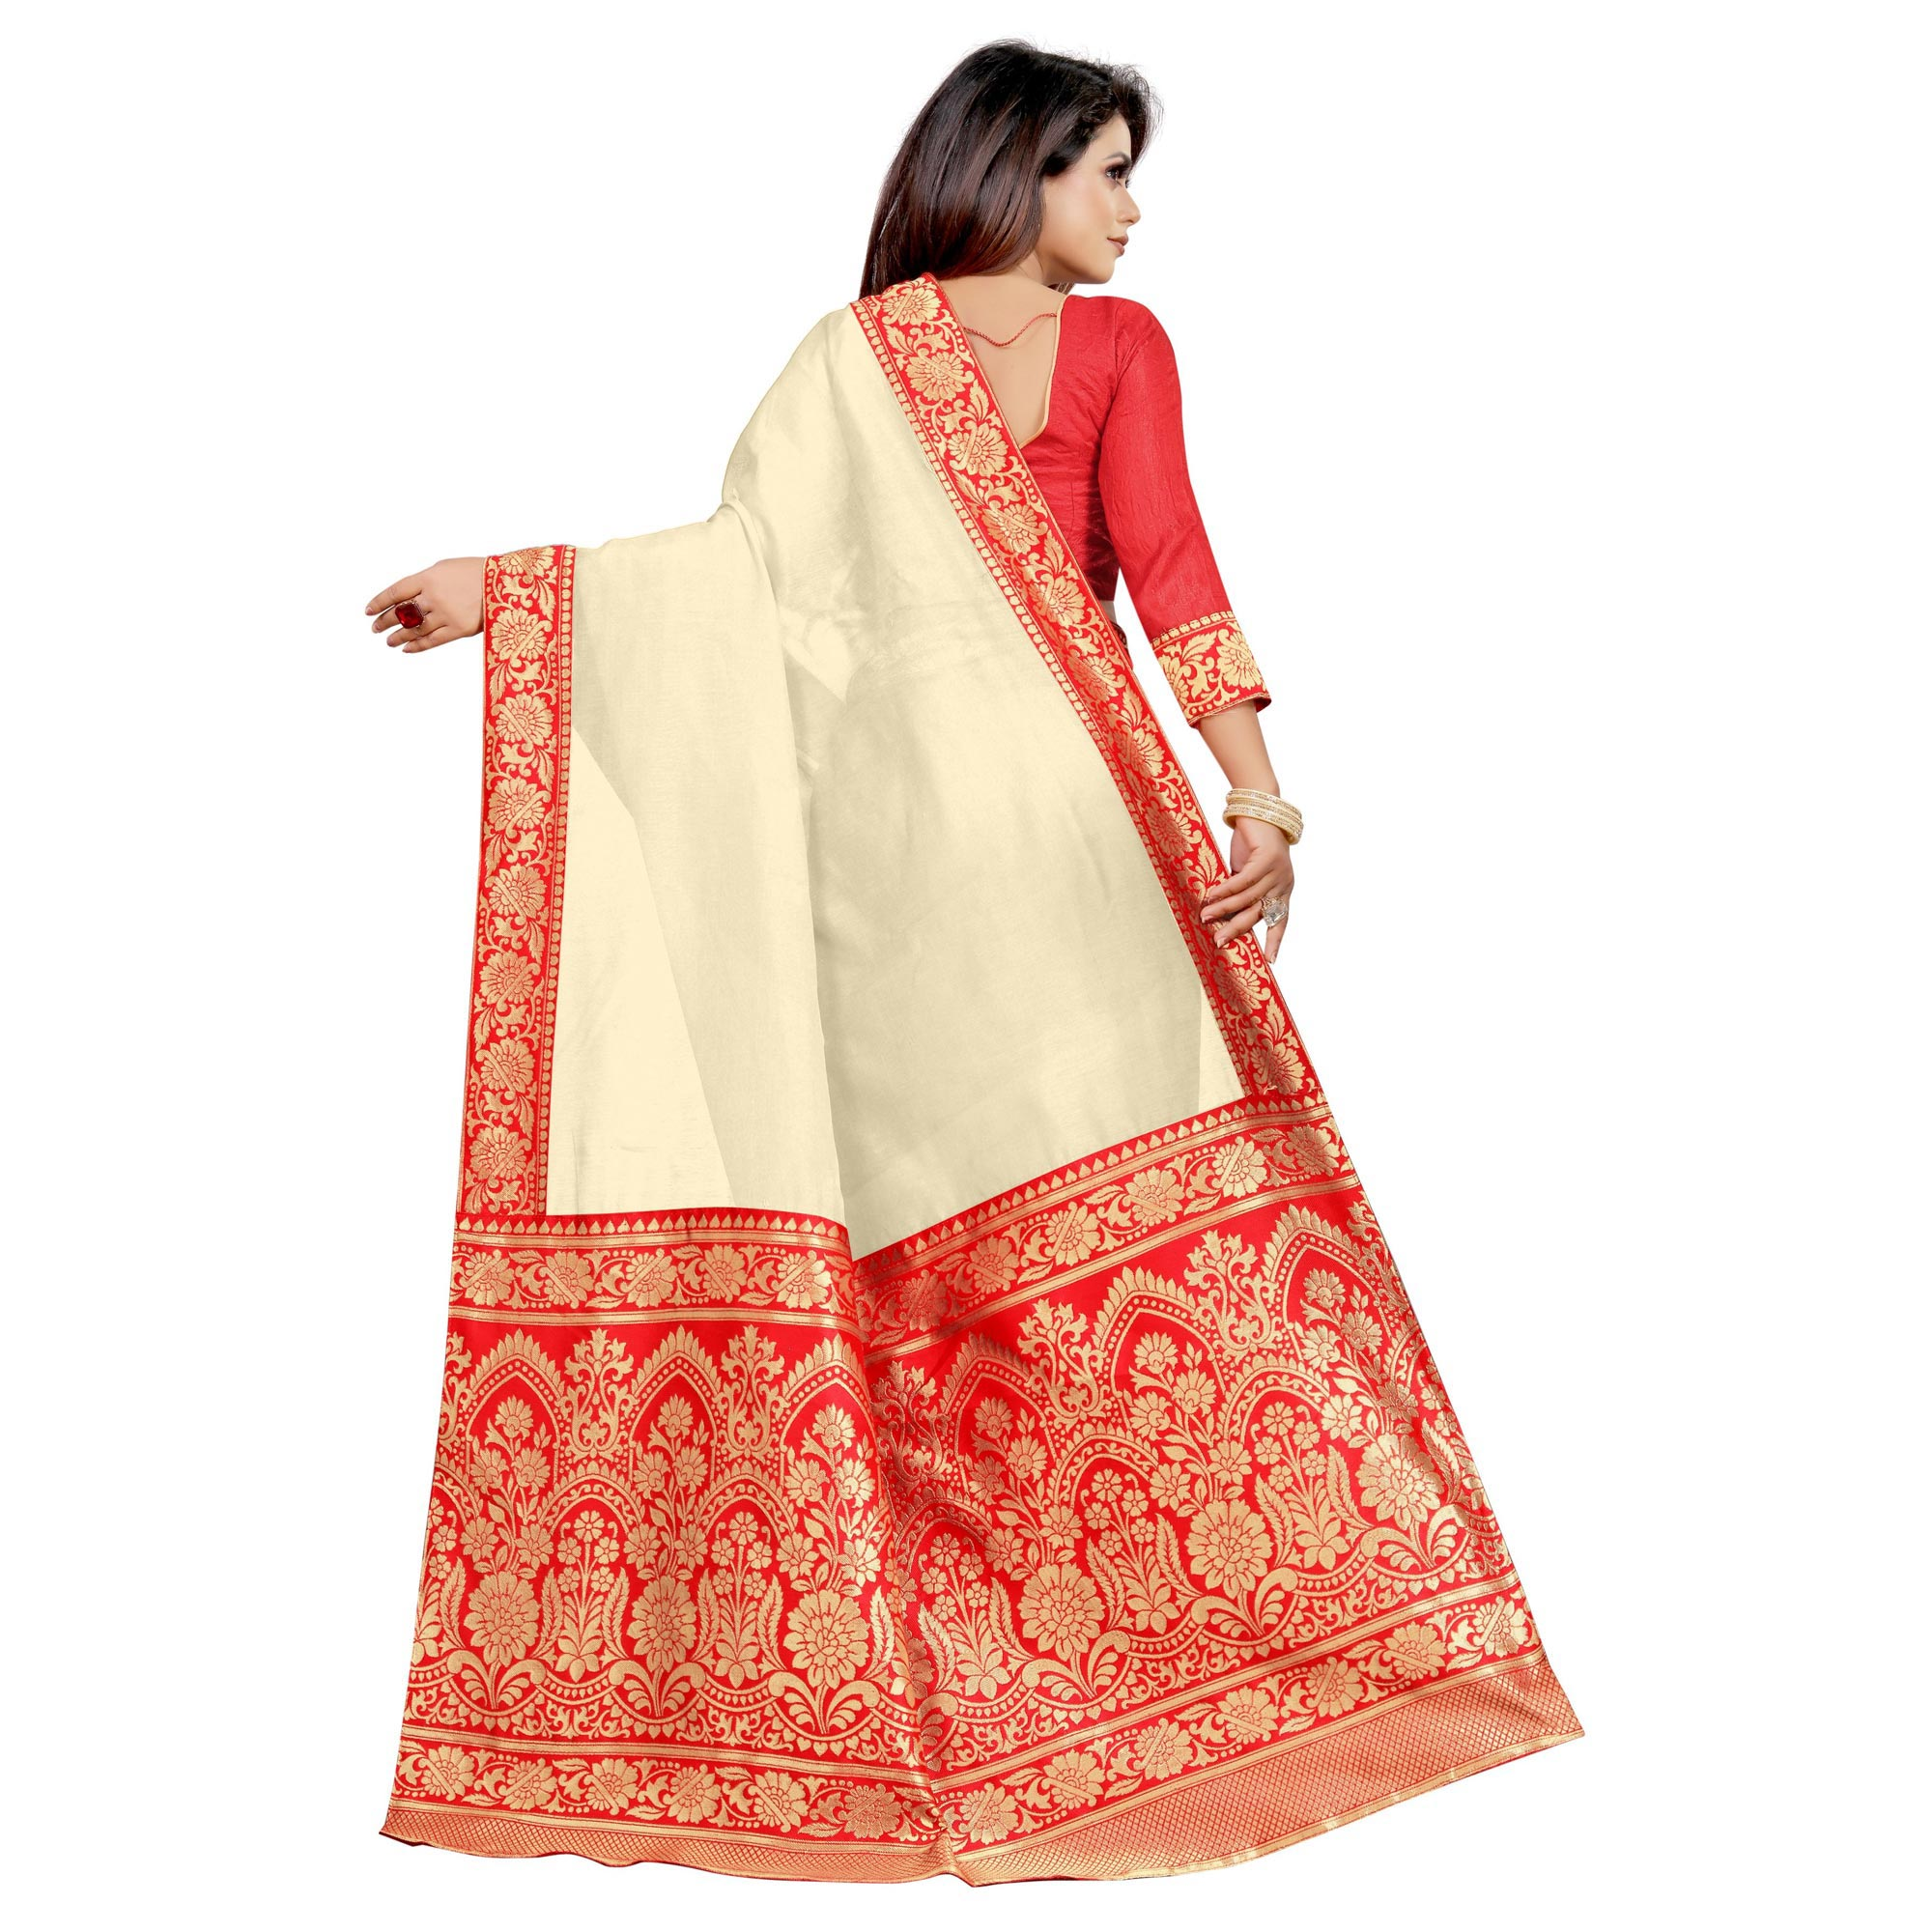 Wazood - Cream Colored Festive Wear Jacquard Pallu Chanderi Cotton Silk Saree